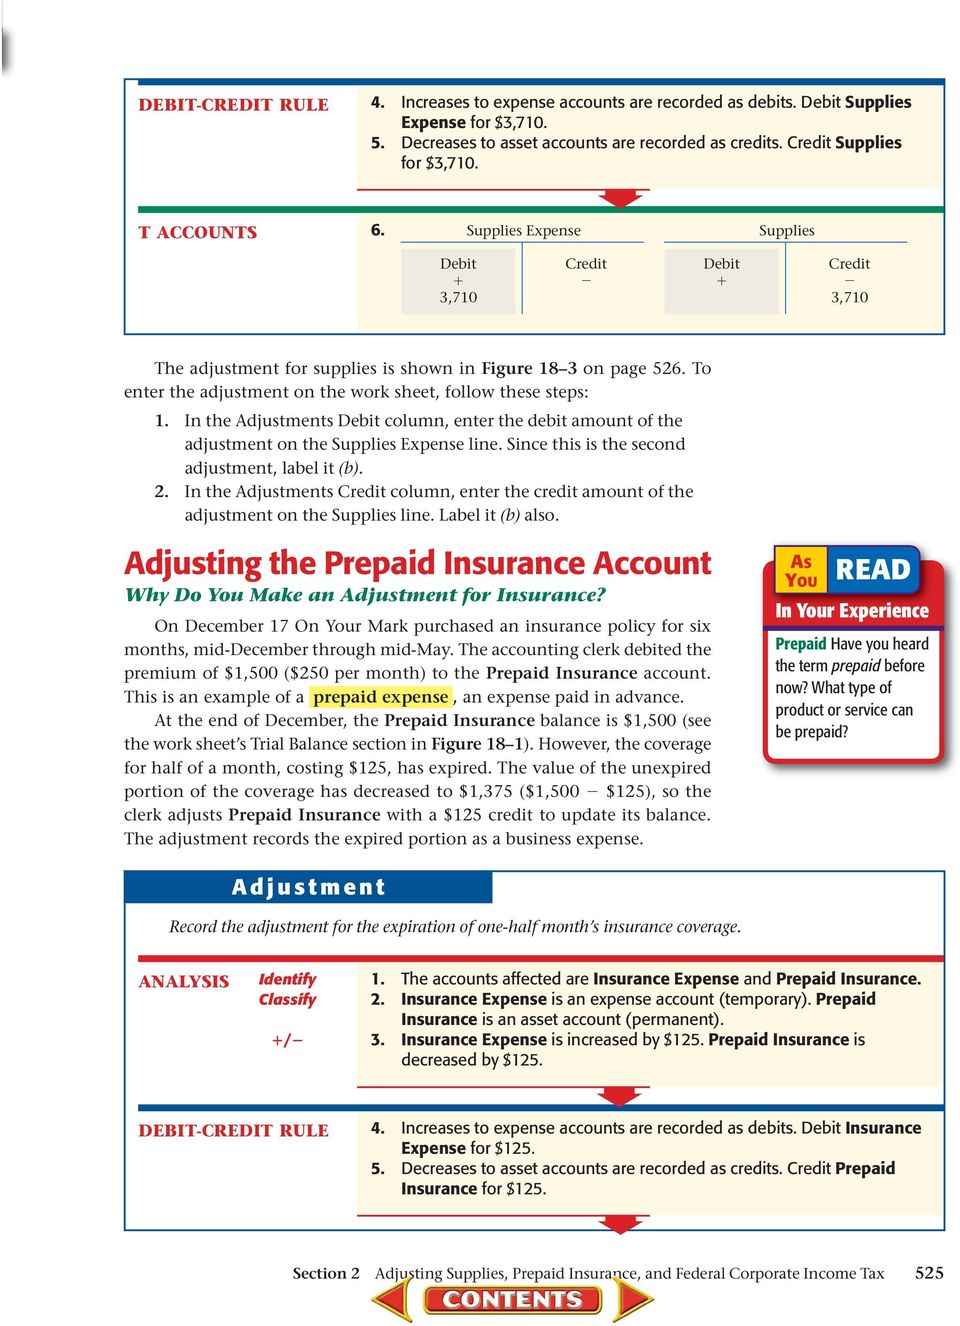 In the Adjustments Debit column, enter the debit amount of the adjustment on the Supplies Expense line. Since this is the second adjustment, label it (b). 2.